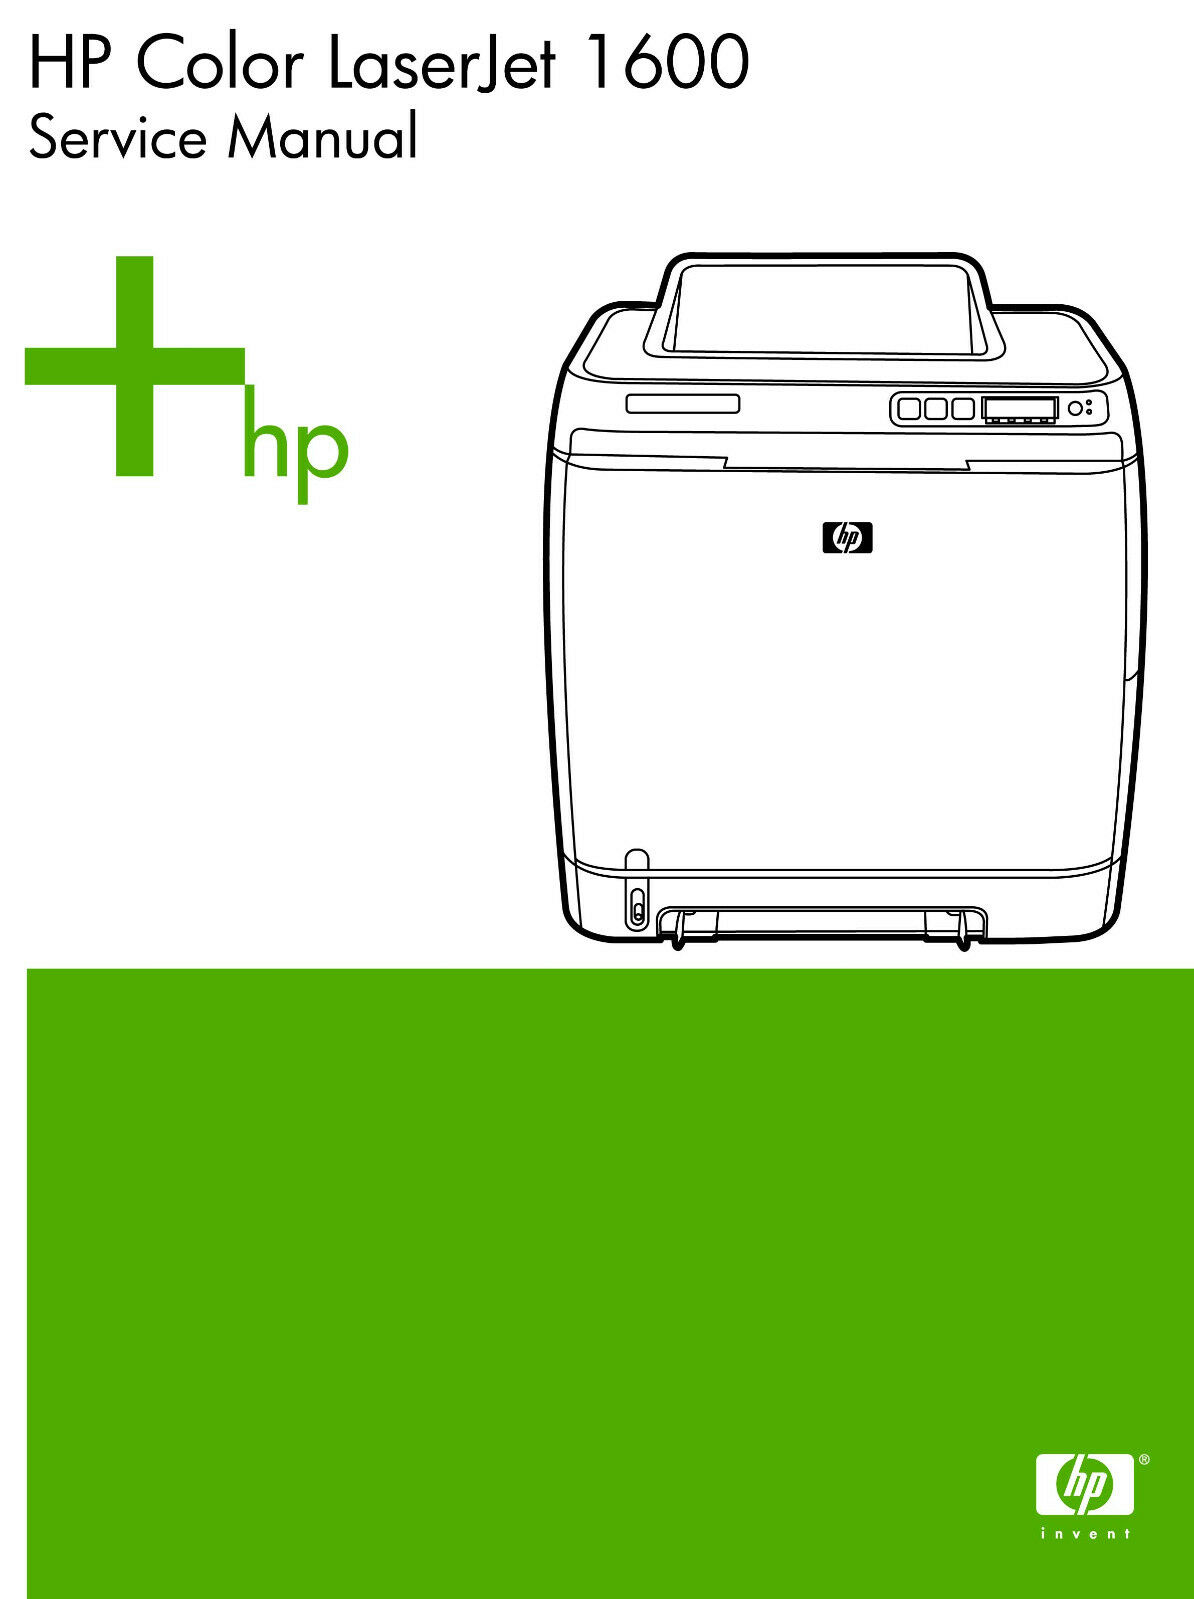 HP Color Laserjet 1600 Printer Service Manual(Parts & Diagrams) 1 of 2FREE  Shipping ...